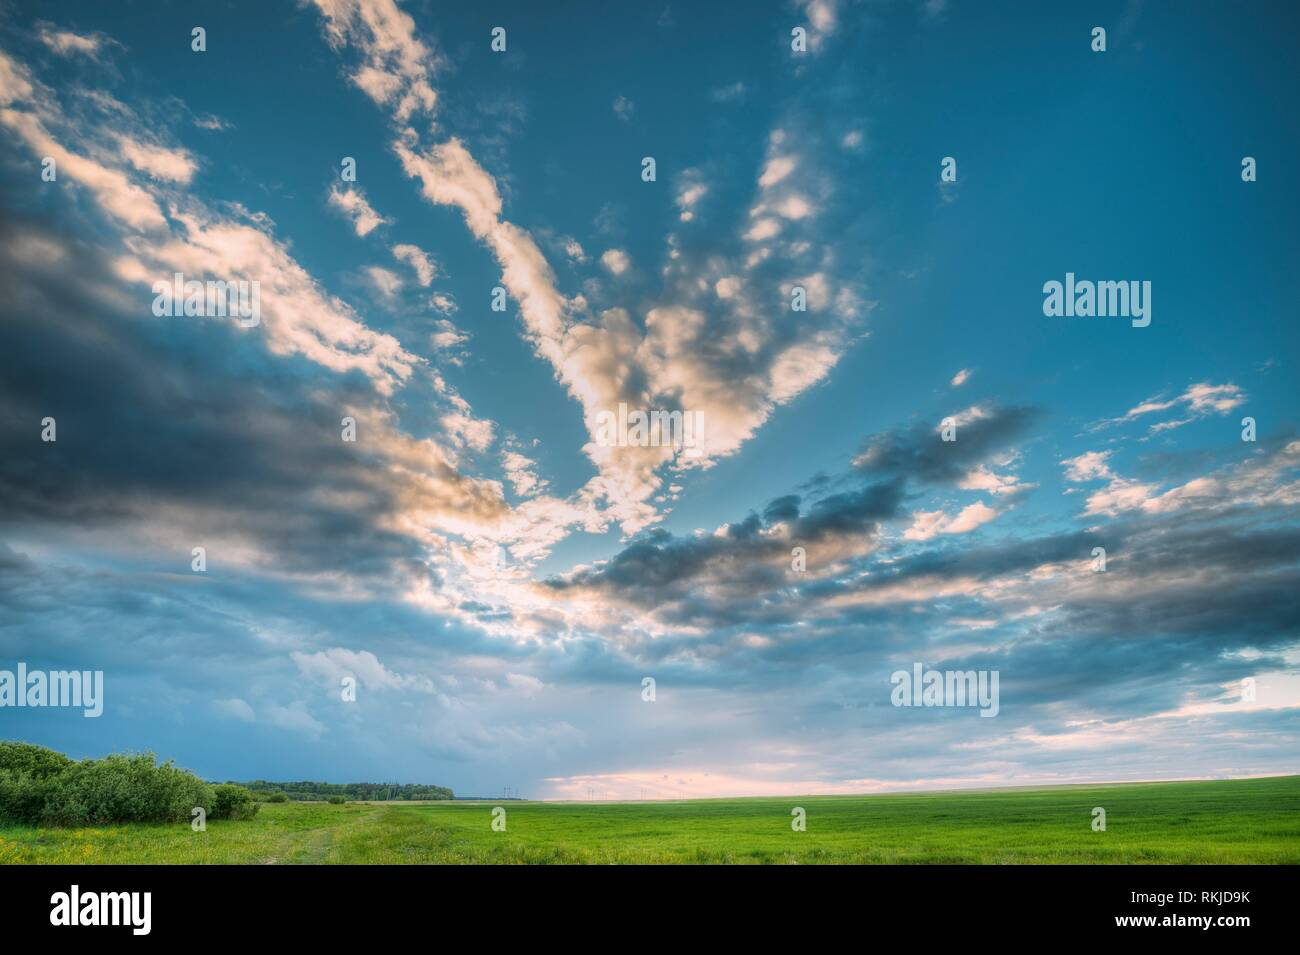 Countryside Rural Field Landscape Under Scenic Spring Blue Cloudy Dramatic Sky With White Fluffy Clouds. Skyline. Agricultural Landscape Of Green - Stock Image